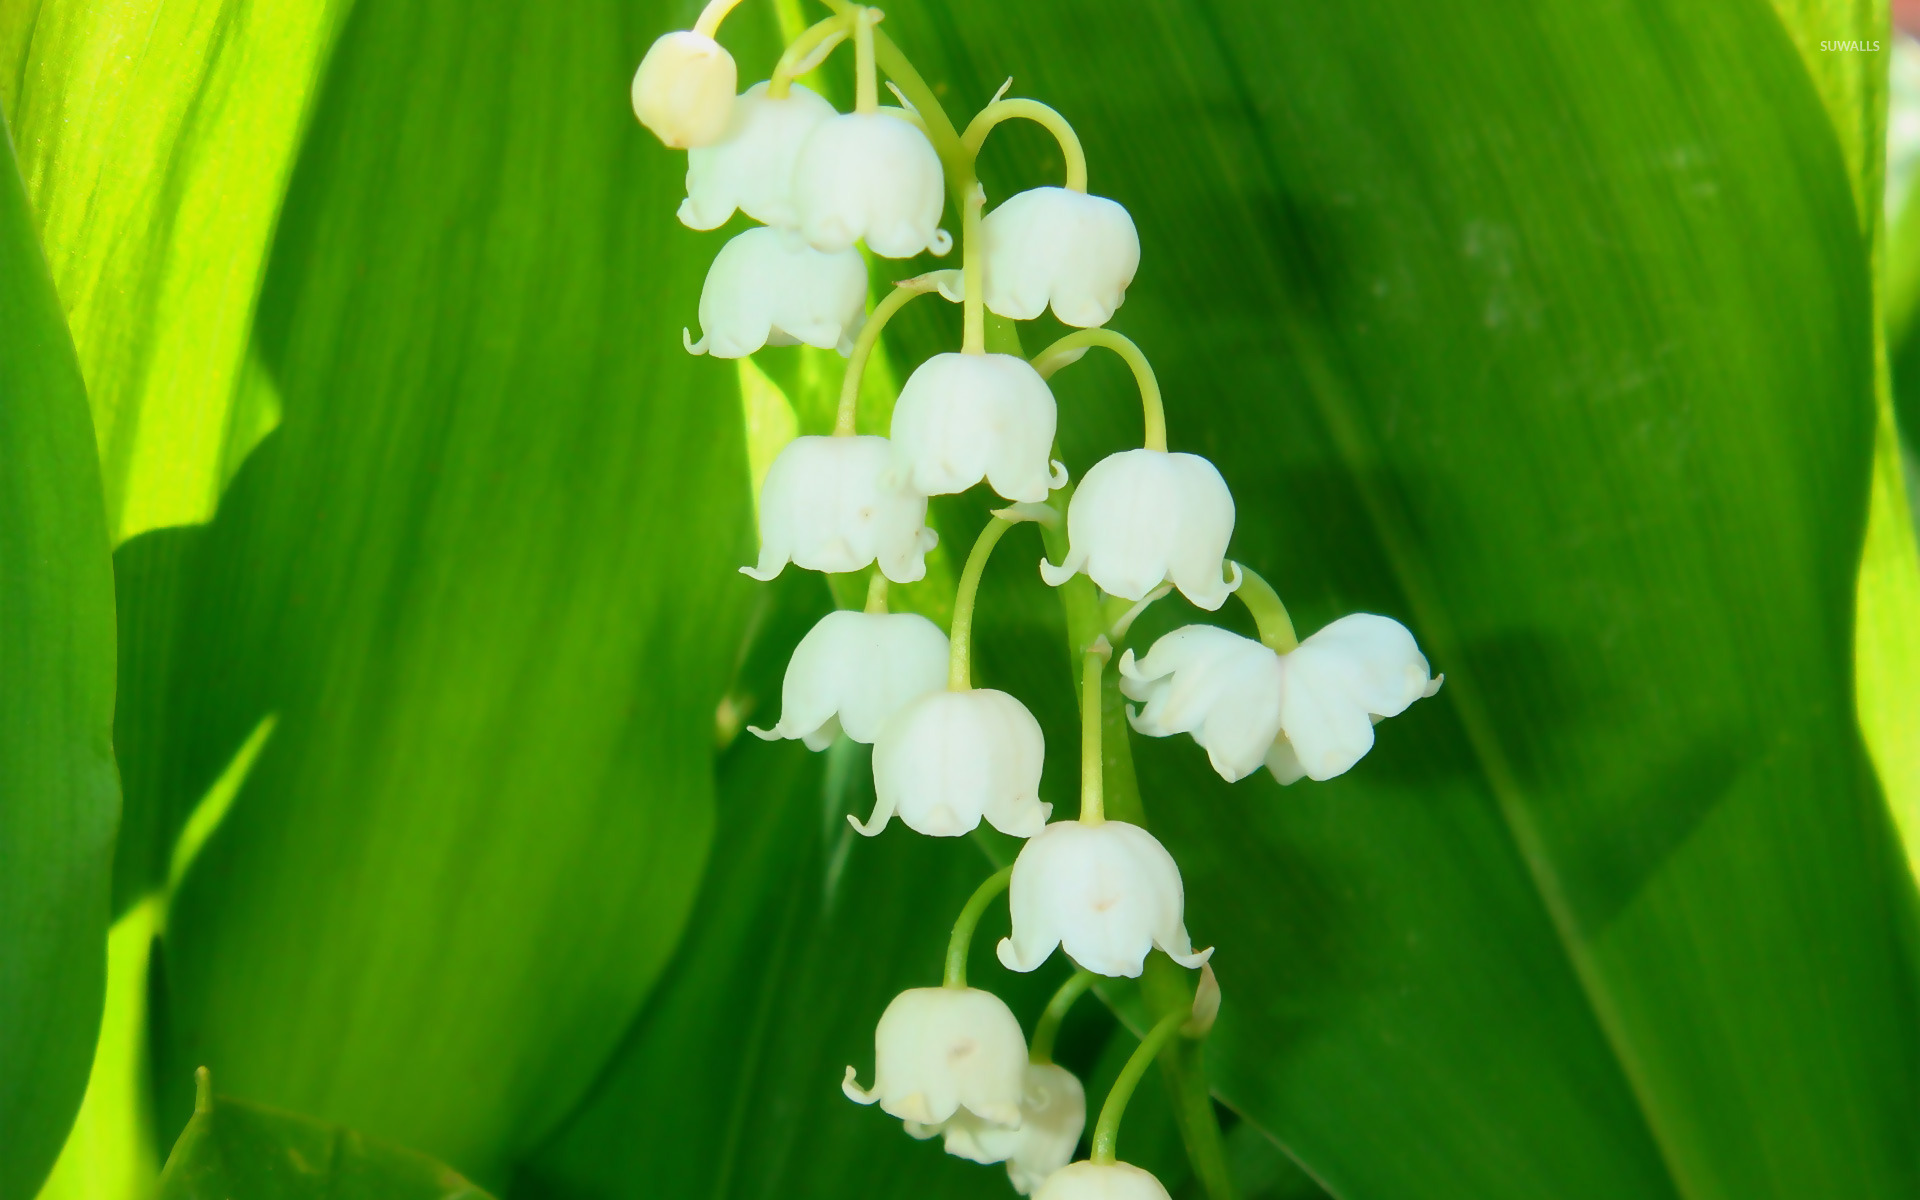 Lily Of The Valley 6 Wallpaper Flower Wallpapers 11777